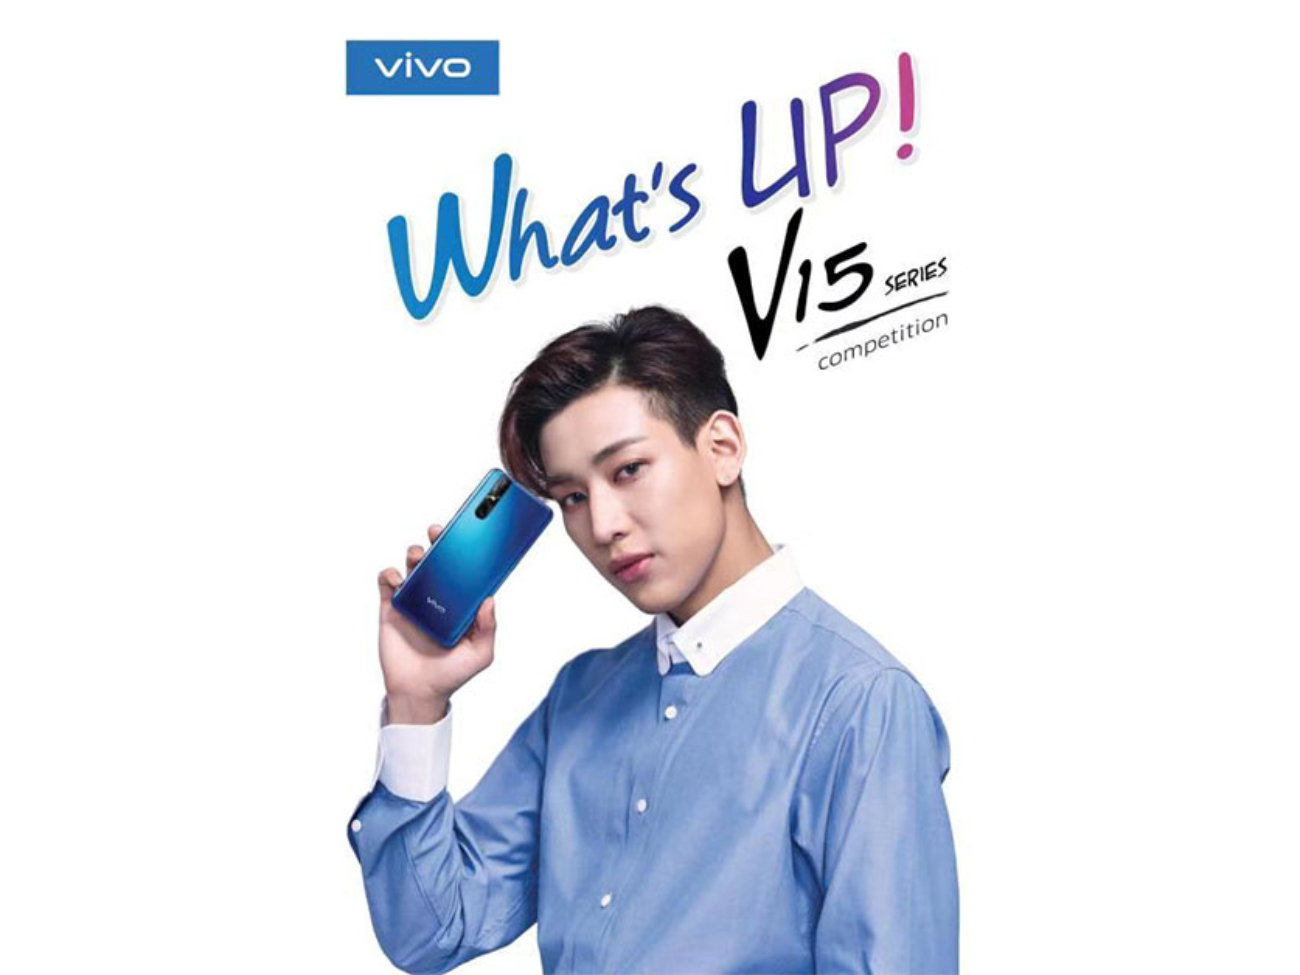 poster-PR-Vivo-Whats-Up-V15-Series-cover